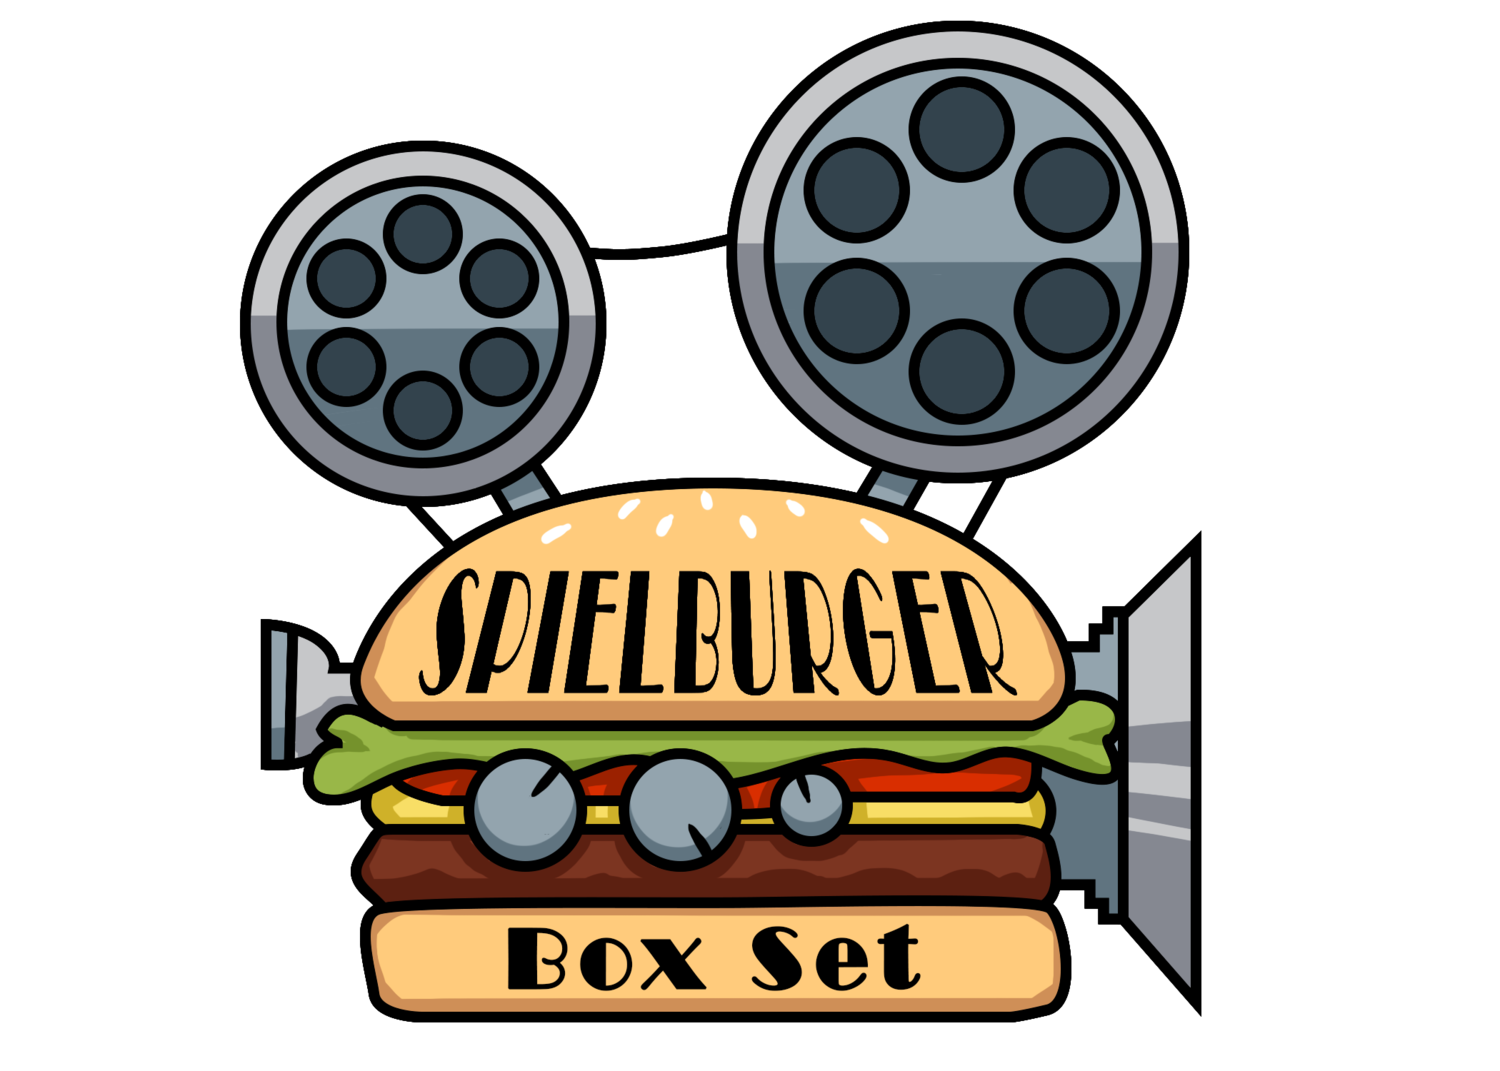 The Spielburger Box Set